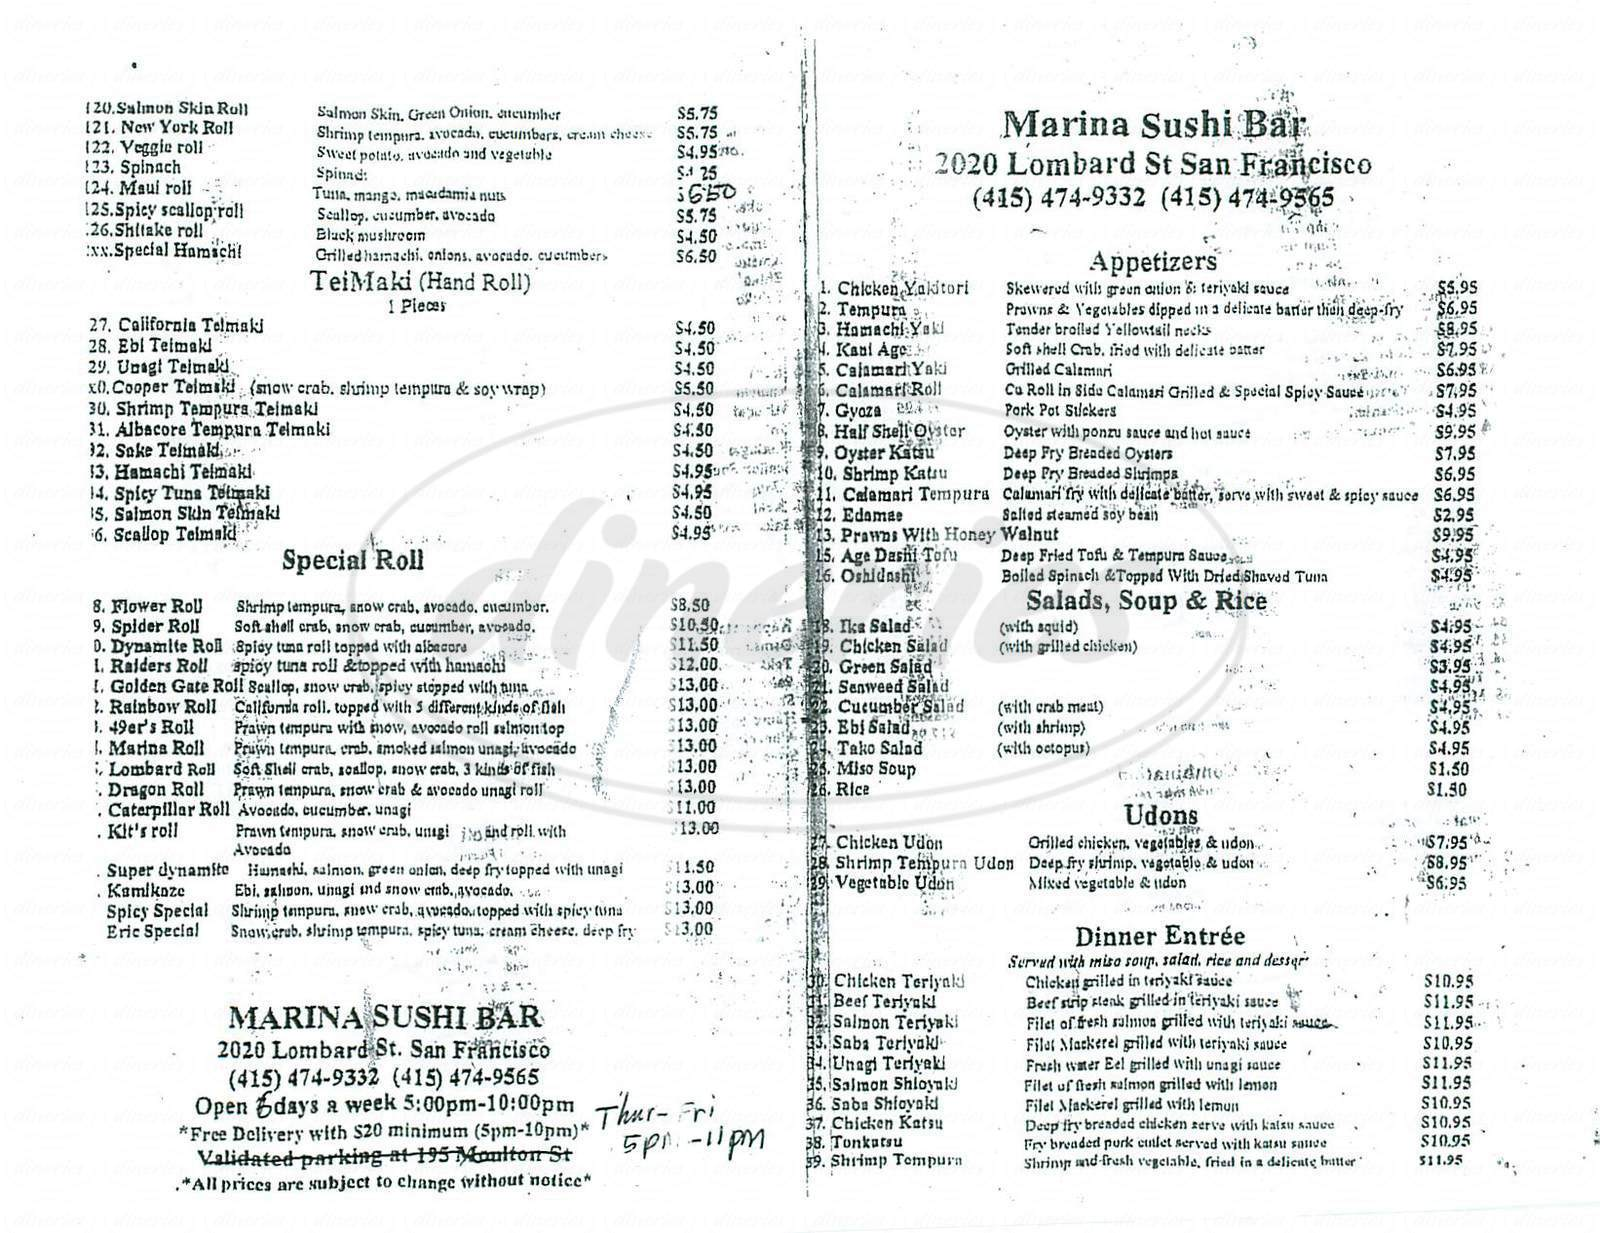 menu for Marina Sushi Bar